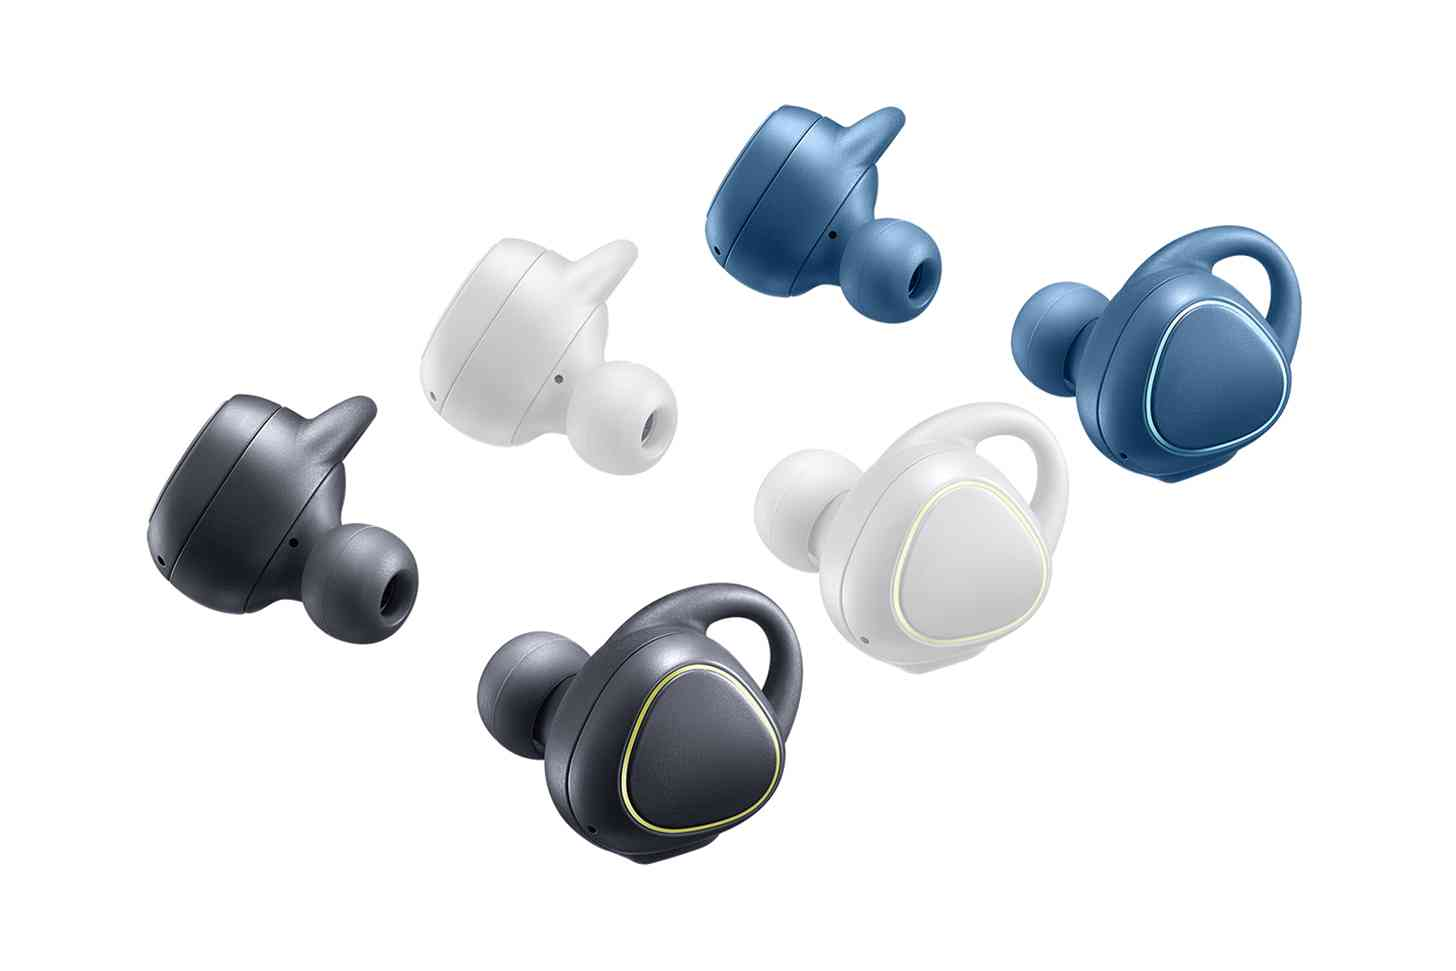 Samsung AirPods competitor (1)